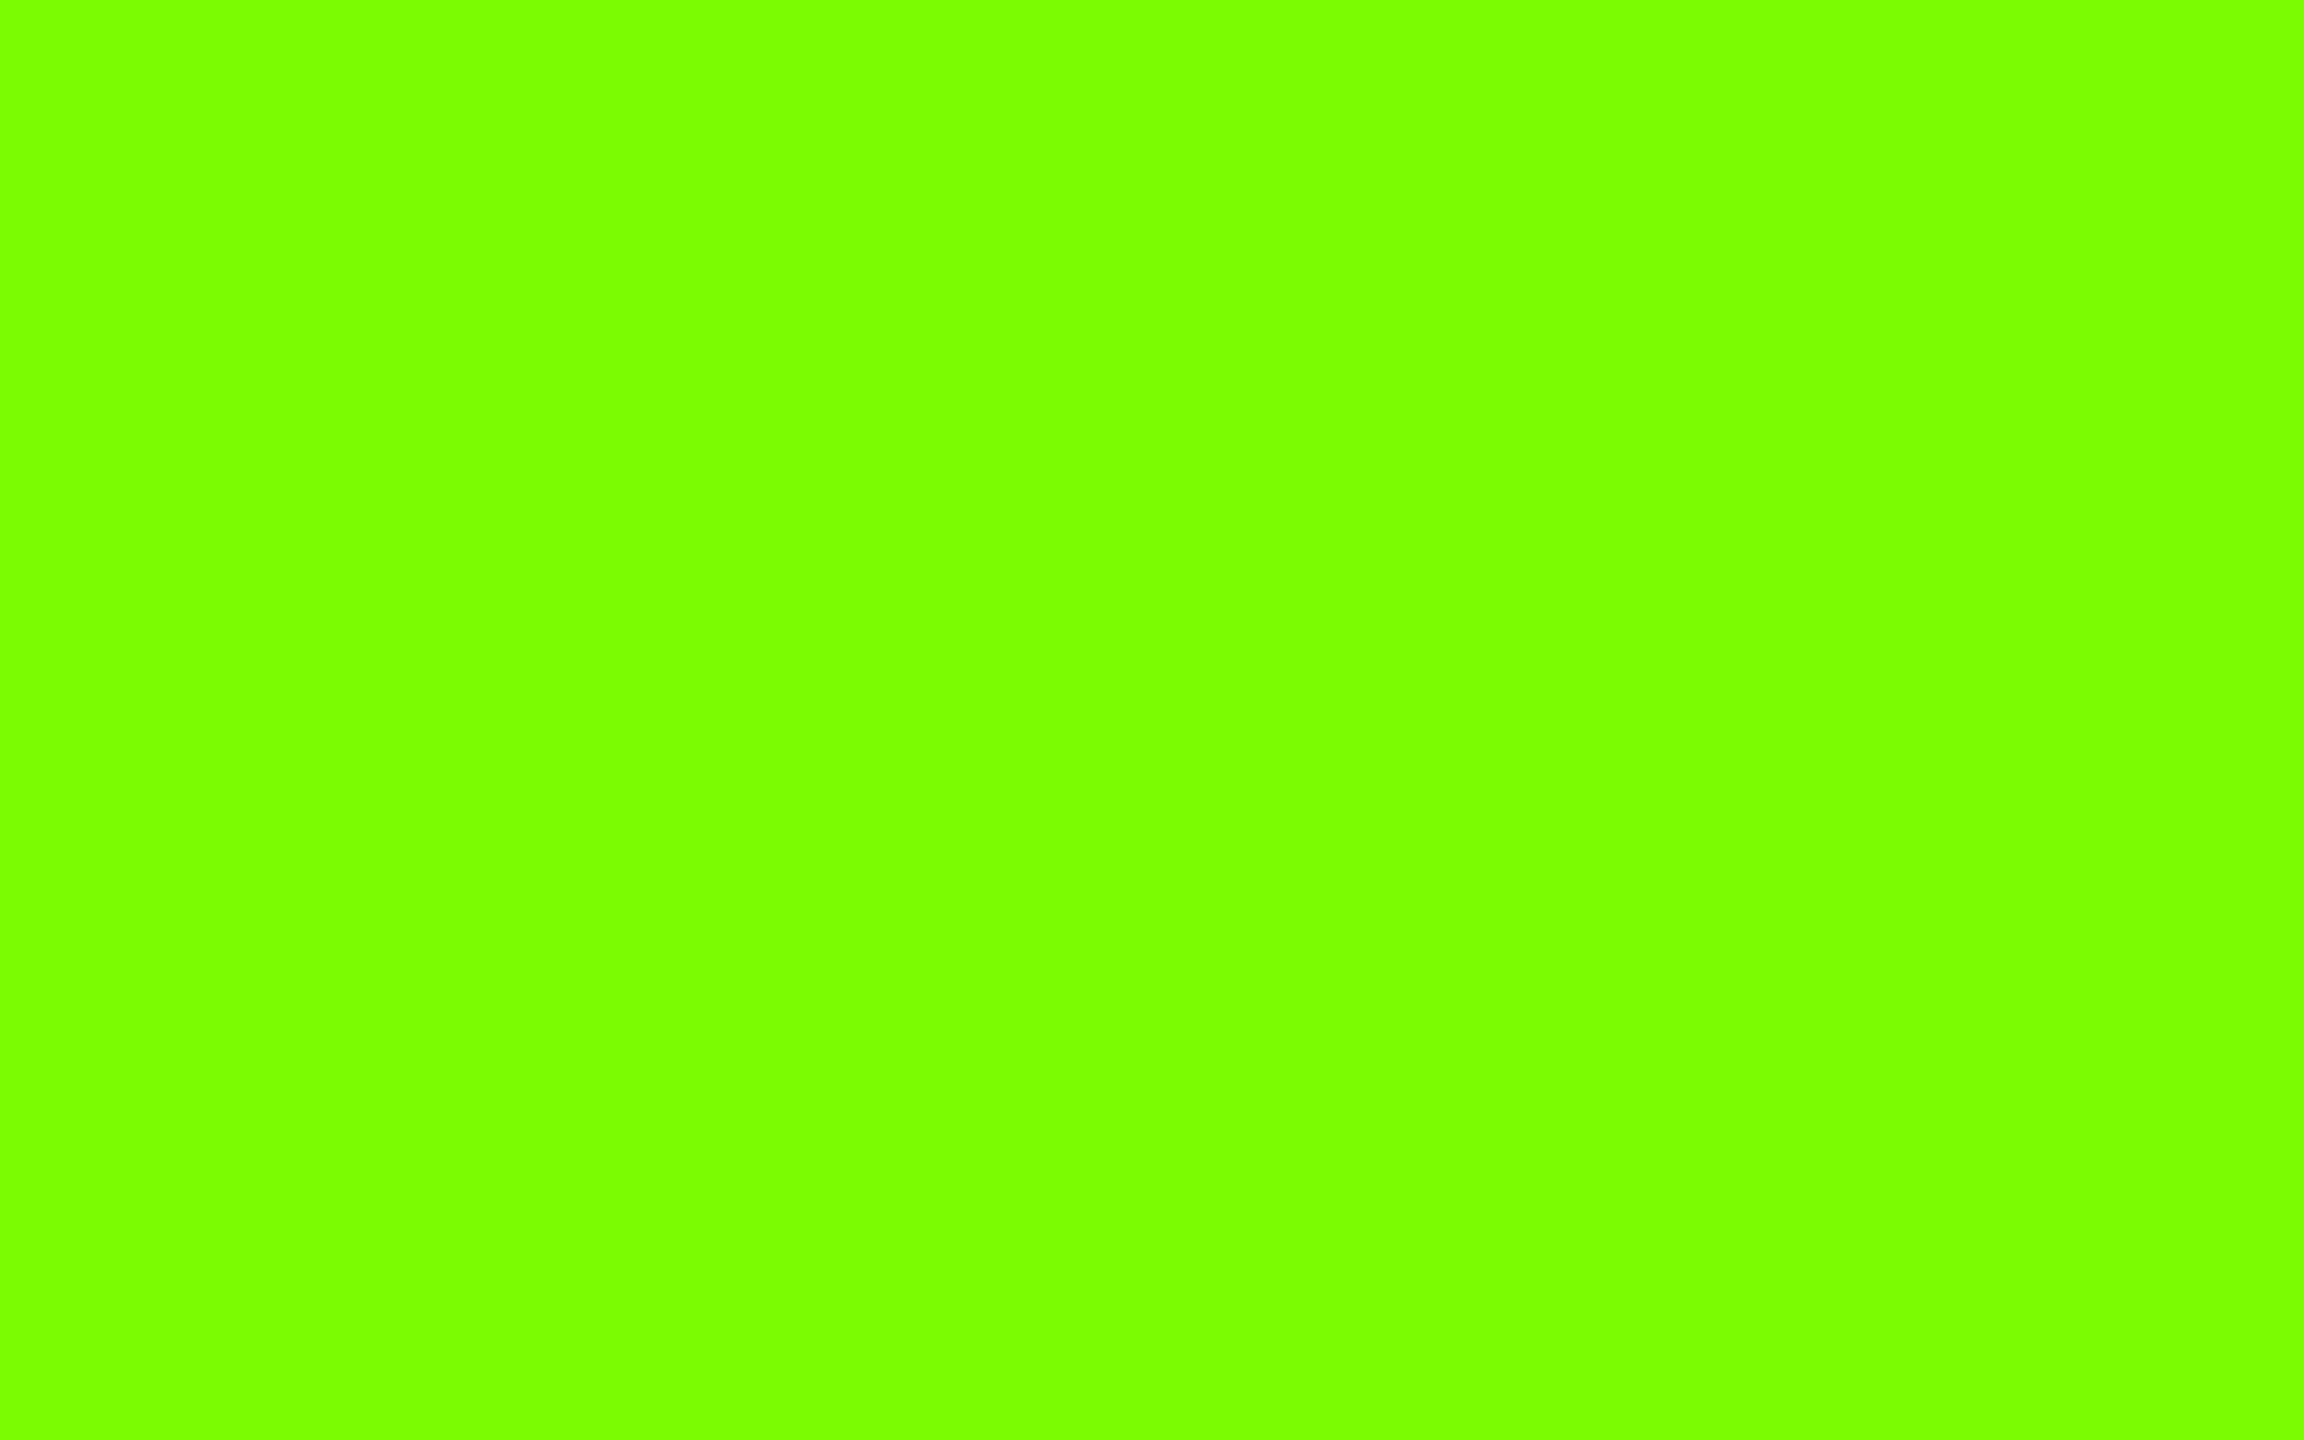 2304x1440 Lawn Green Solid Color Background